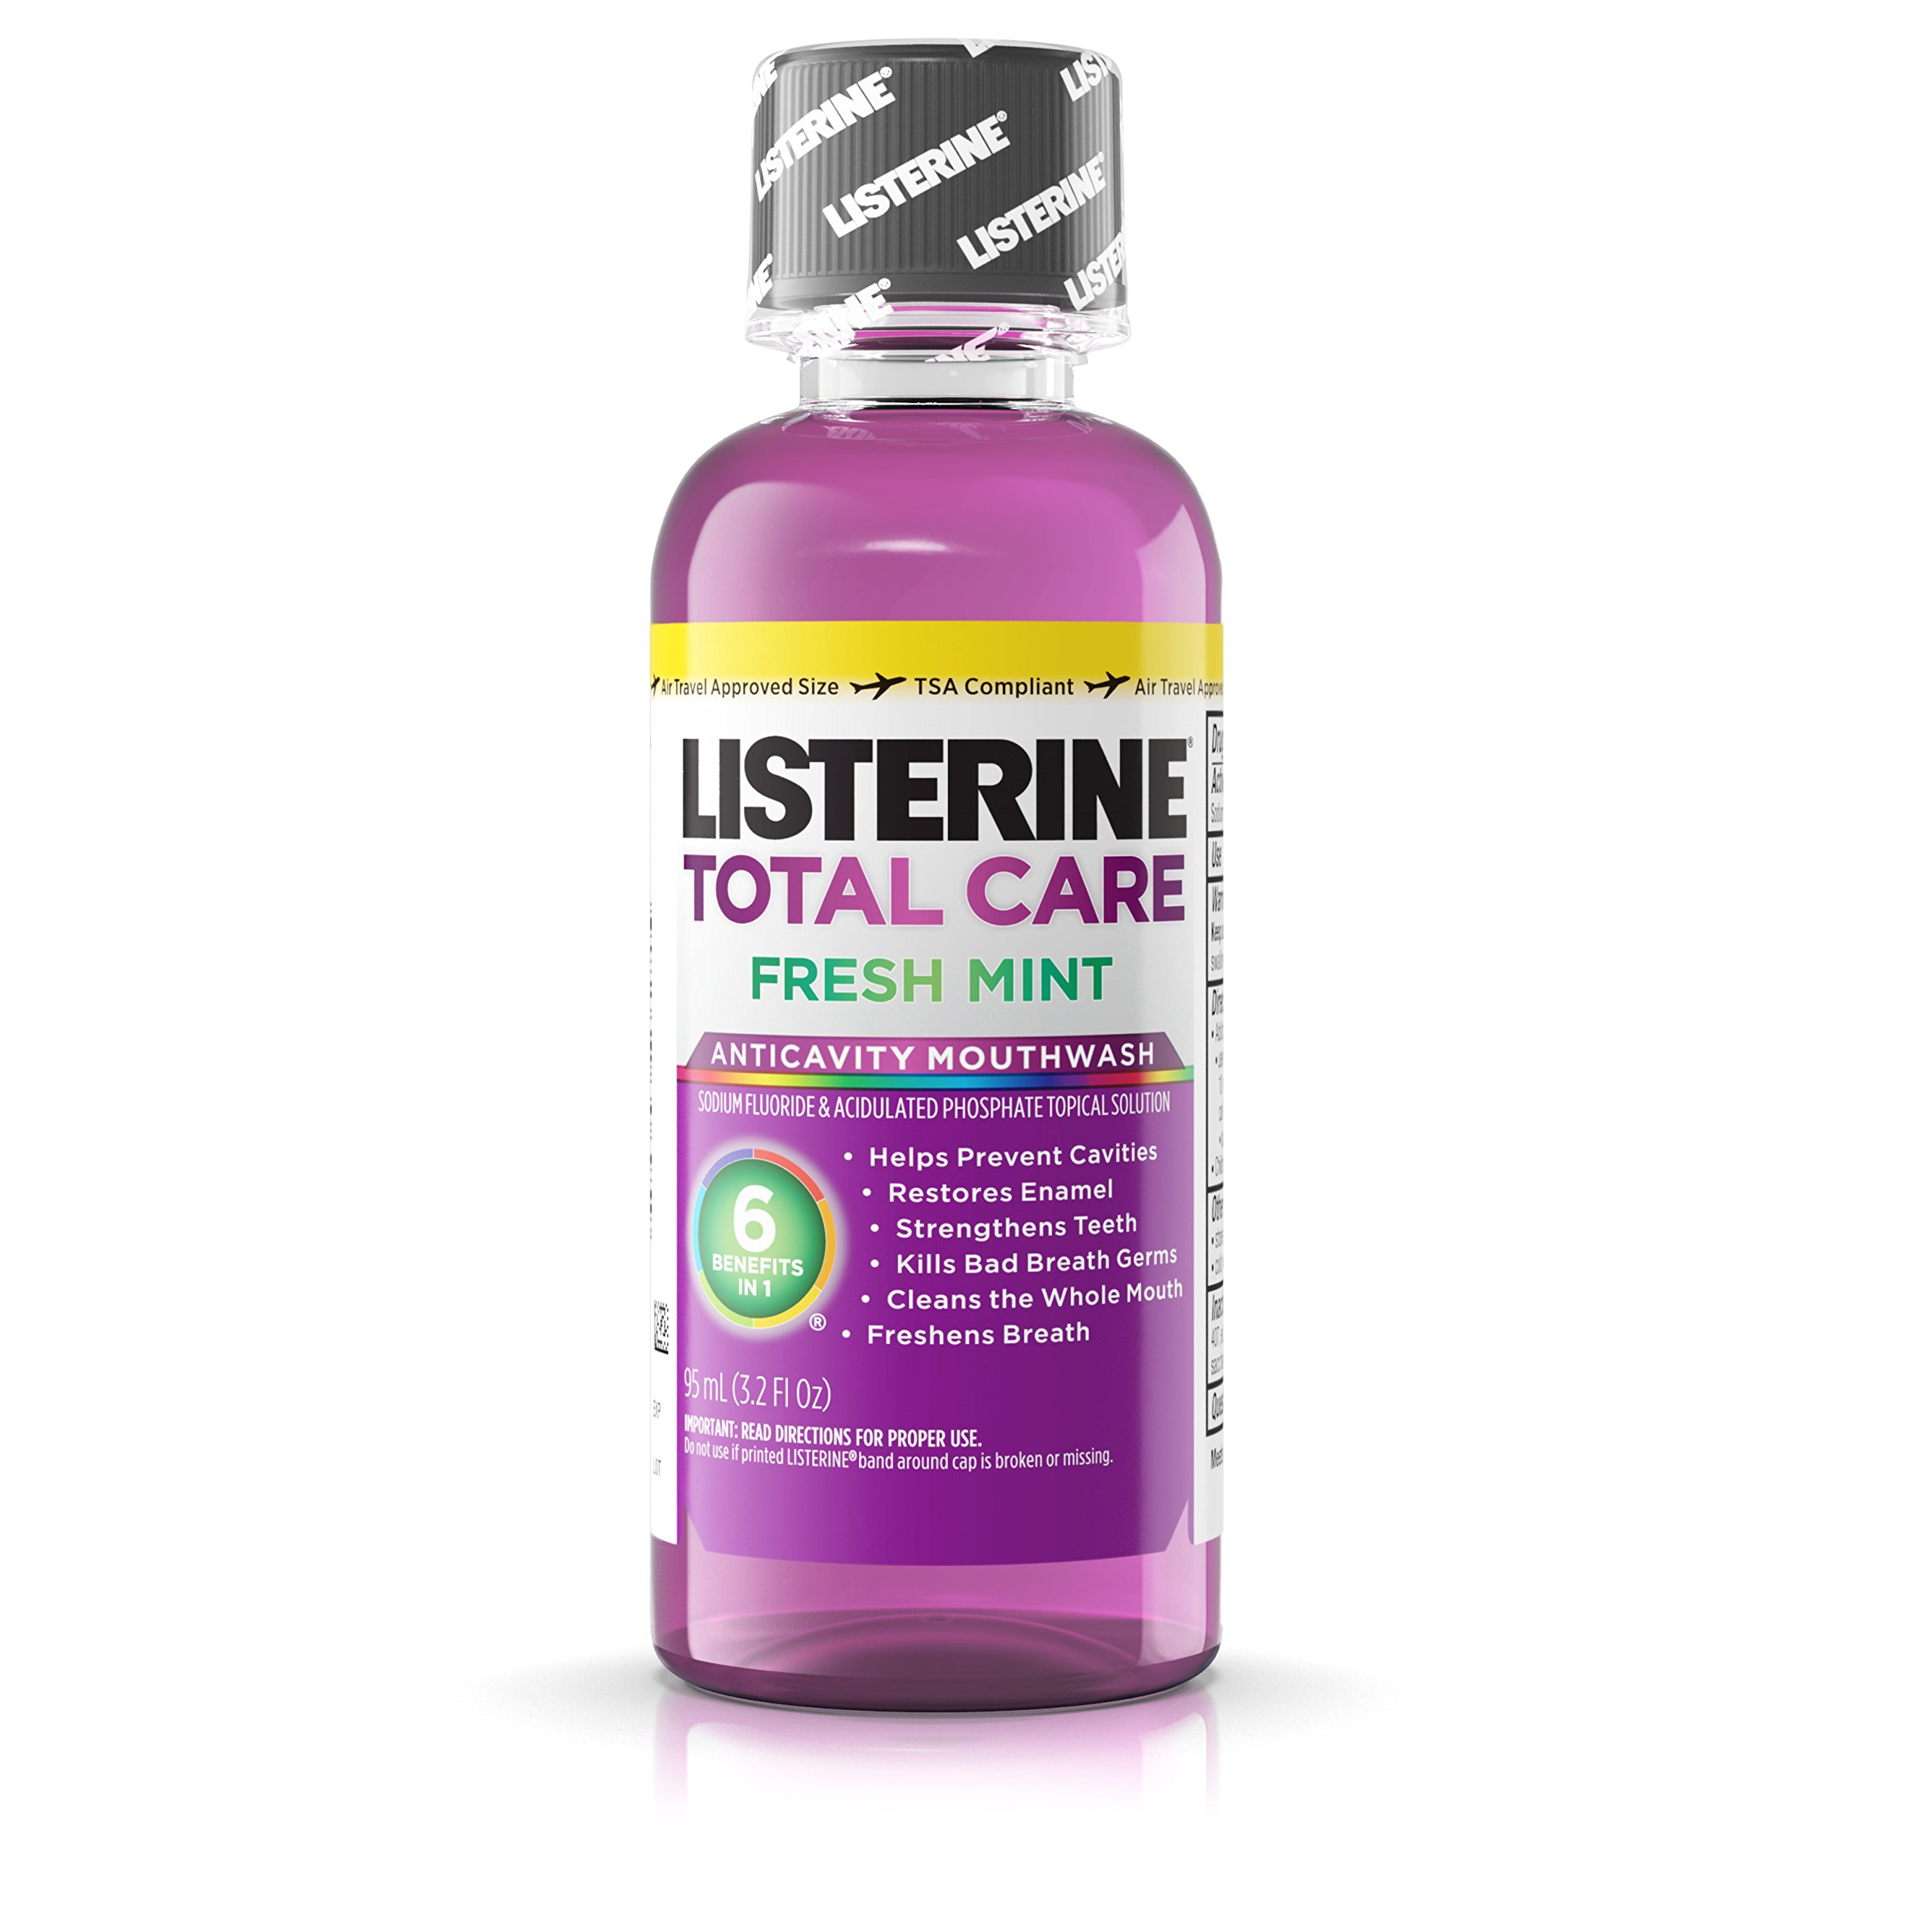 Listerine Total Care Anticavity Mouthwash, Fresh Mint, 3.2 Ounce (Pack of 24)